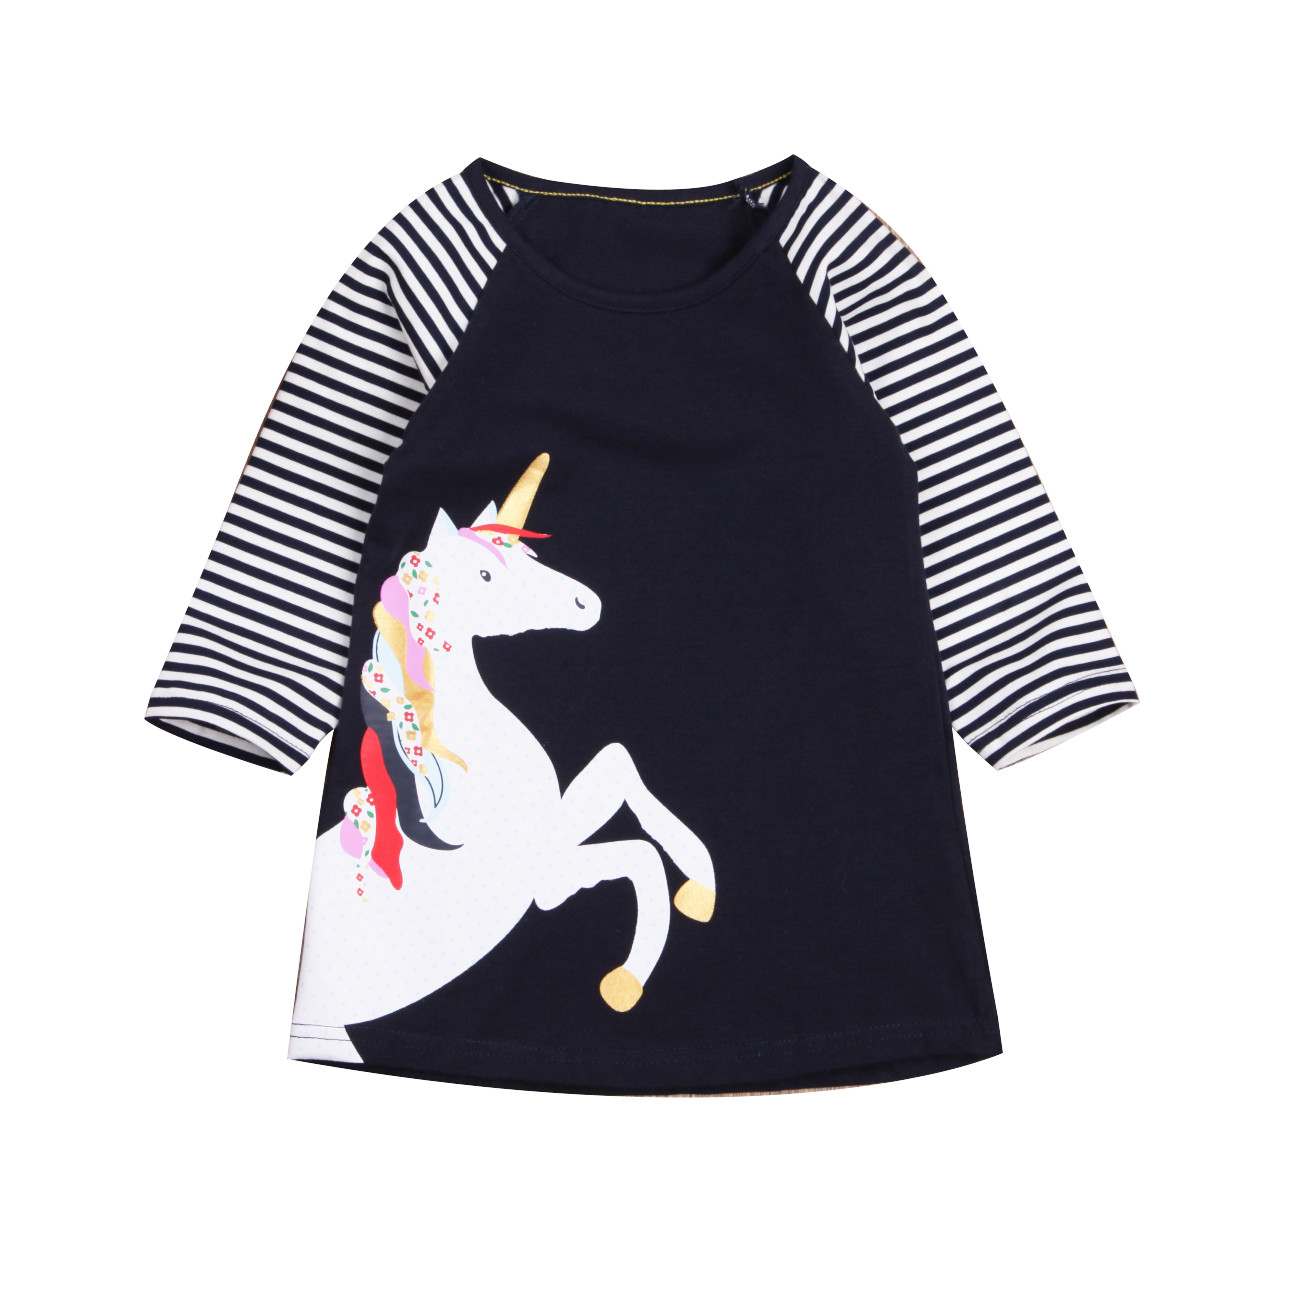 Princess Kids Baby Girls Dress Cotton Cute Mini Long Sleeve Casual Striped Party Casual Dresses Girl все цены